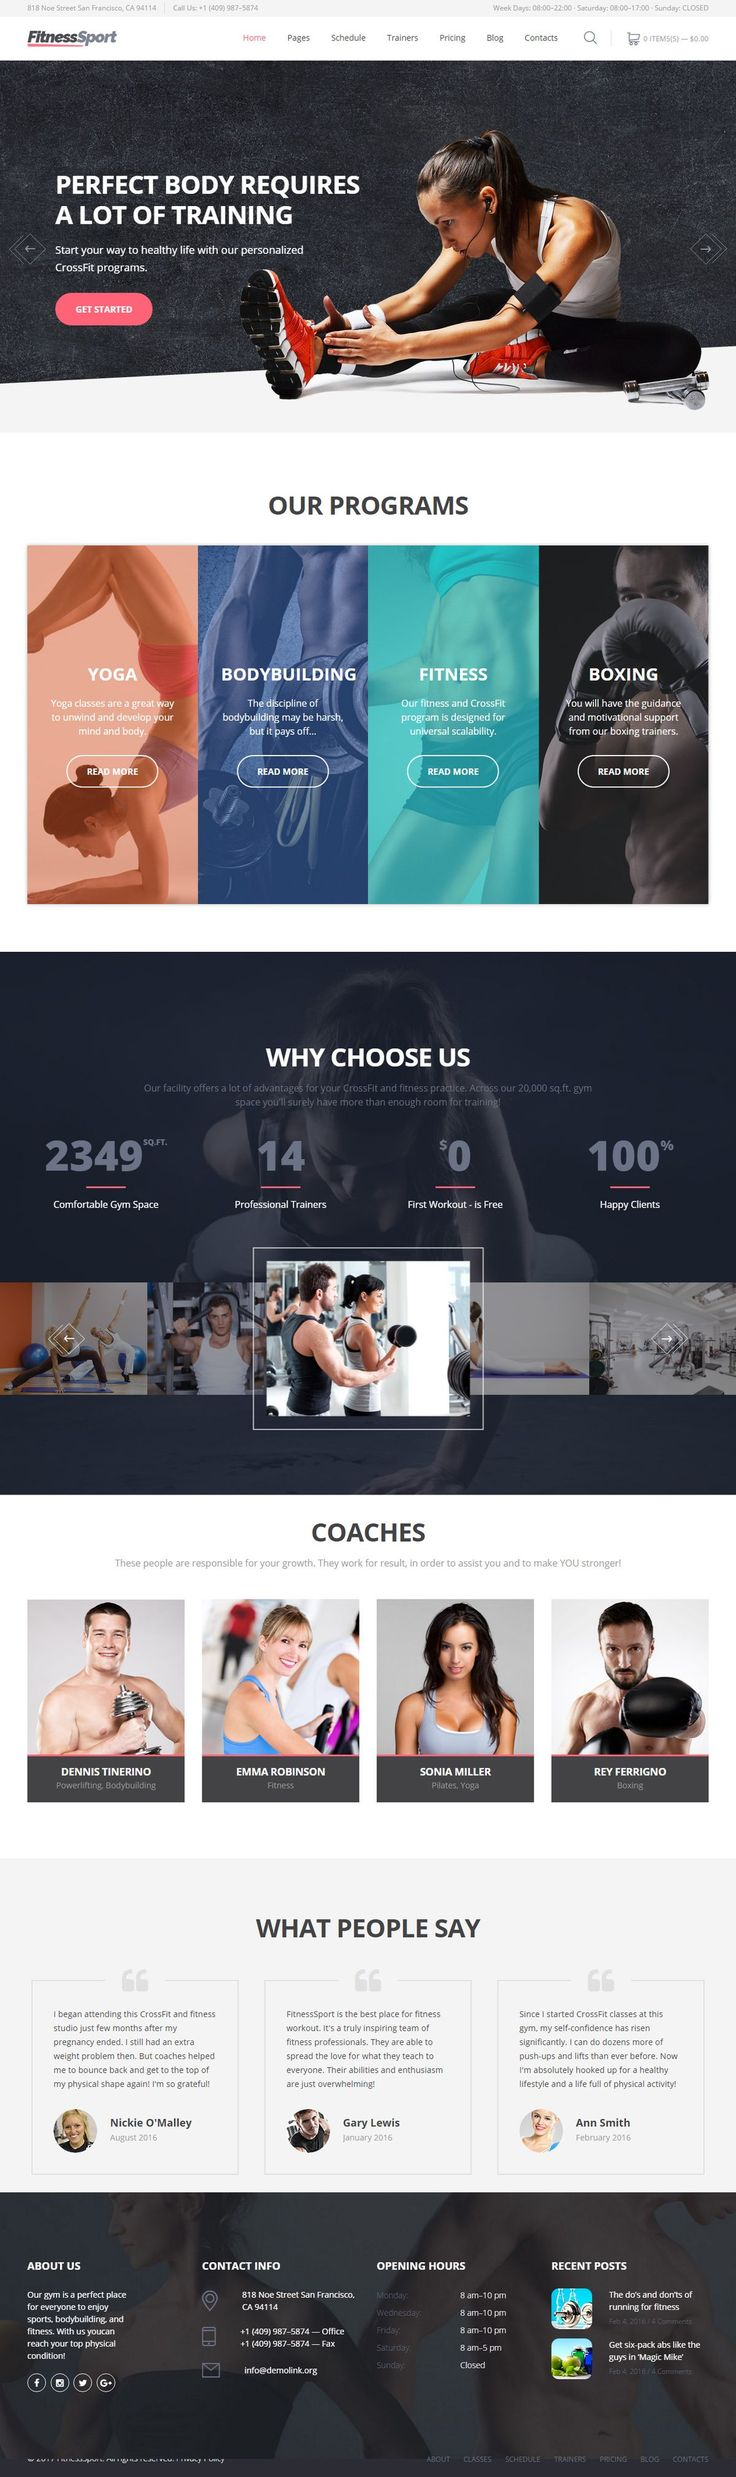 FitnessSport is Premium Responsive Parallax #HTML5 Template. Bootstrap 3 Framework. If you like this #FitnessTemplate visit our handpicked list of best #Gym and #Fitness Template at: http://www.responsivemiracle.com/best-html5-gym-and-fitness-template/